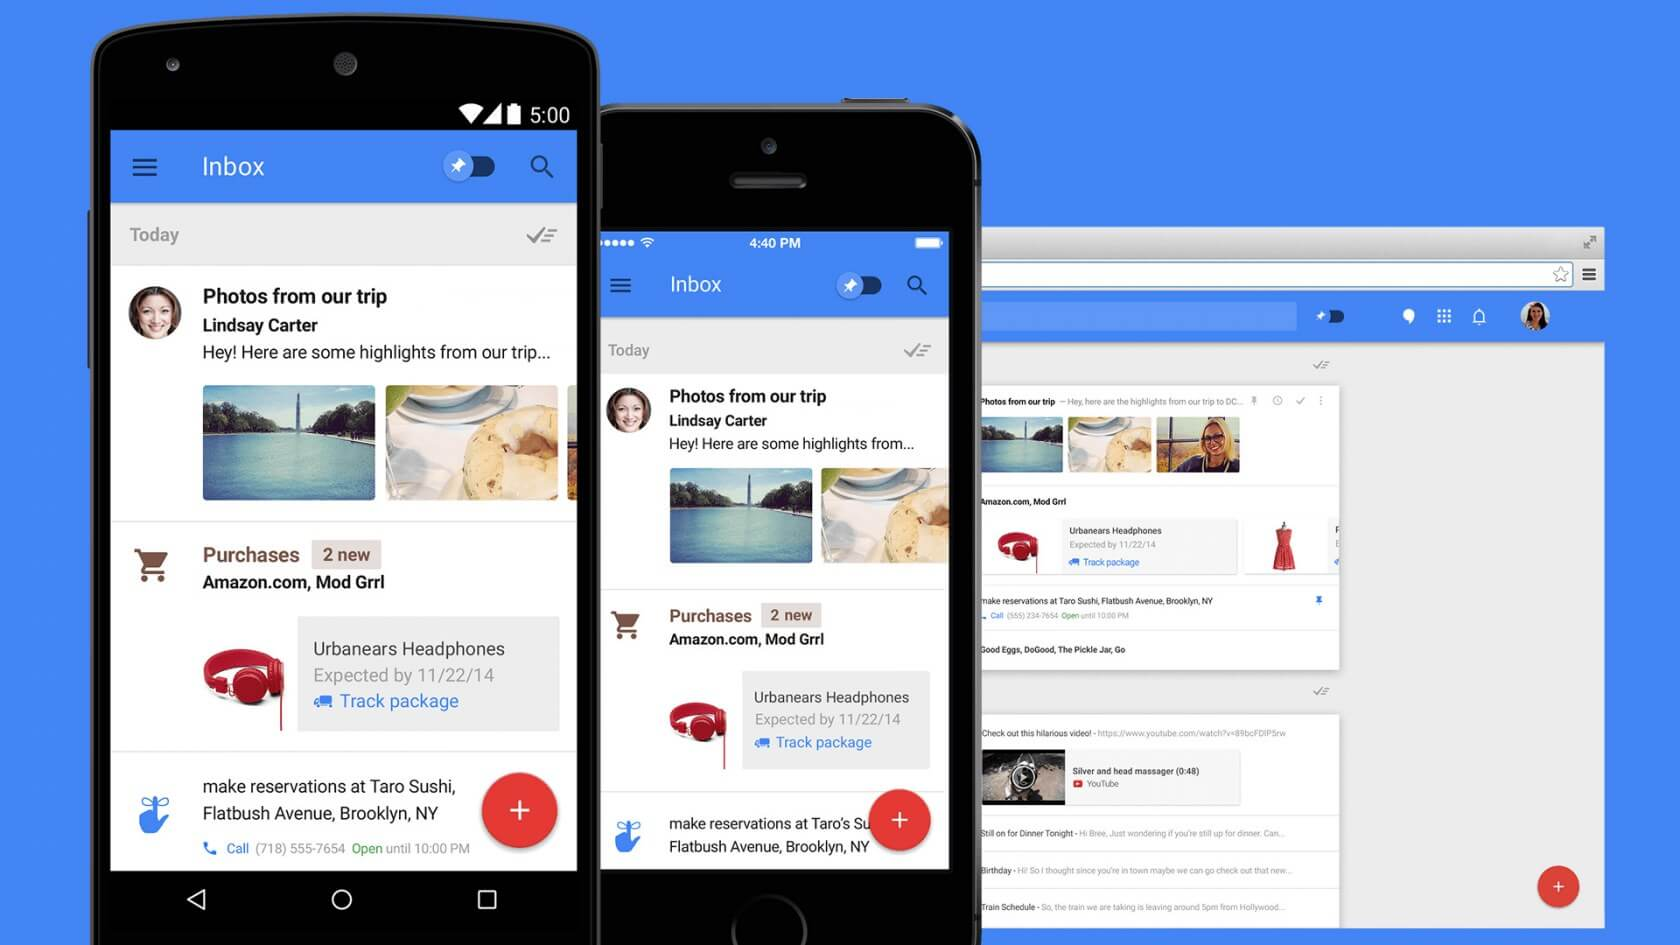 Google to shut down Inbox app by March 2019